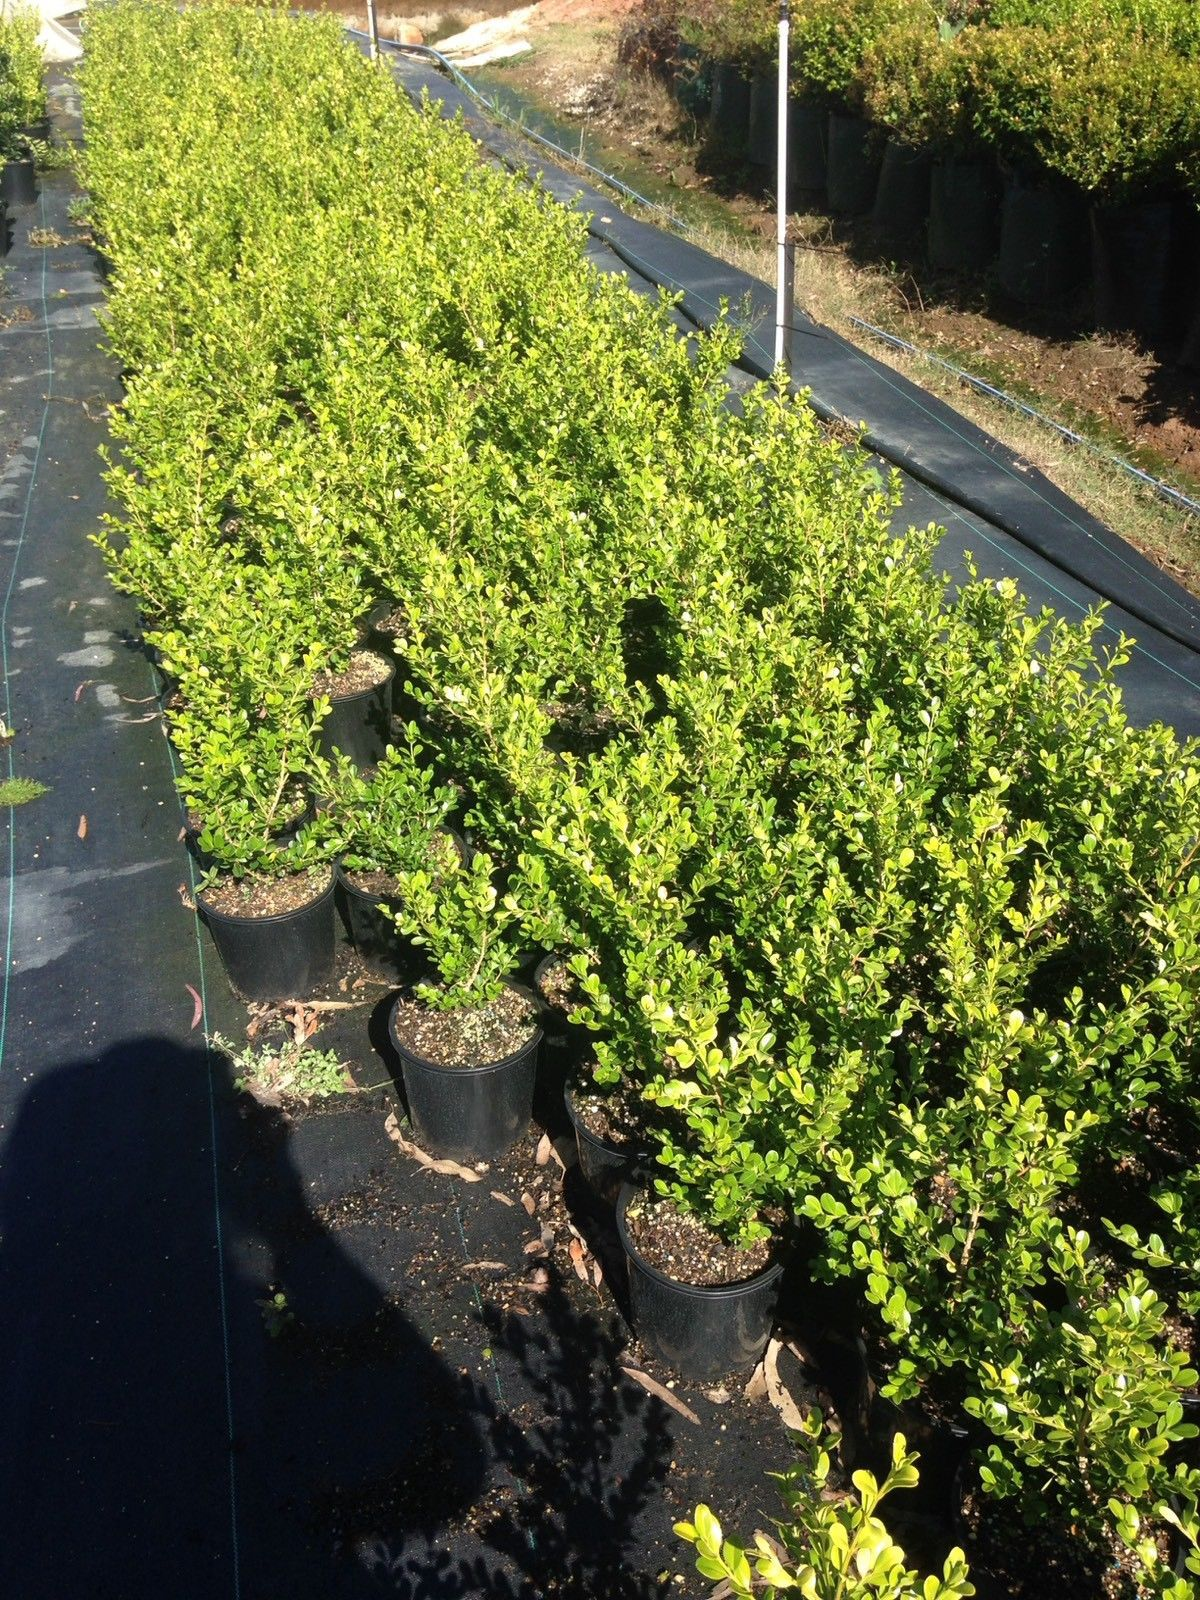 Buy Hedge Plant Directly From Grower Variety And Pot Sizes Which Are Available Currently 200 Mm Pots Hedge Plants From 7 Dollars Plants Hedges Viburnum